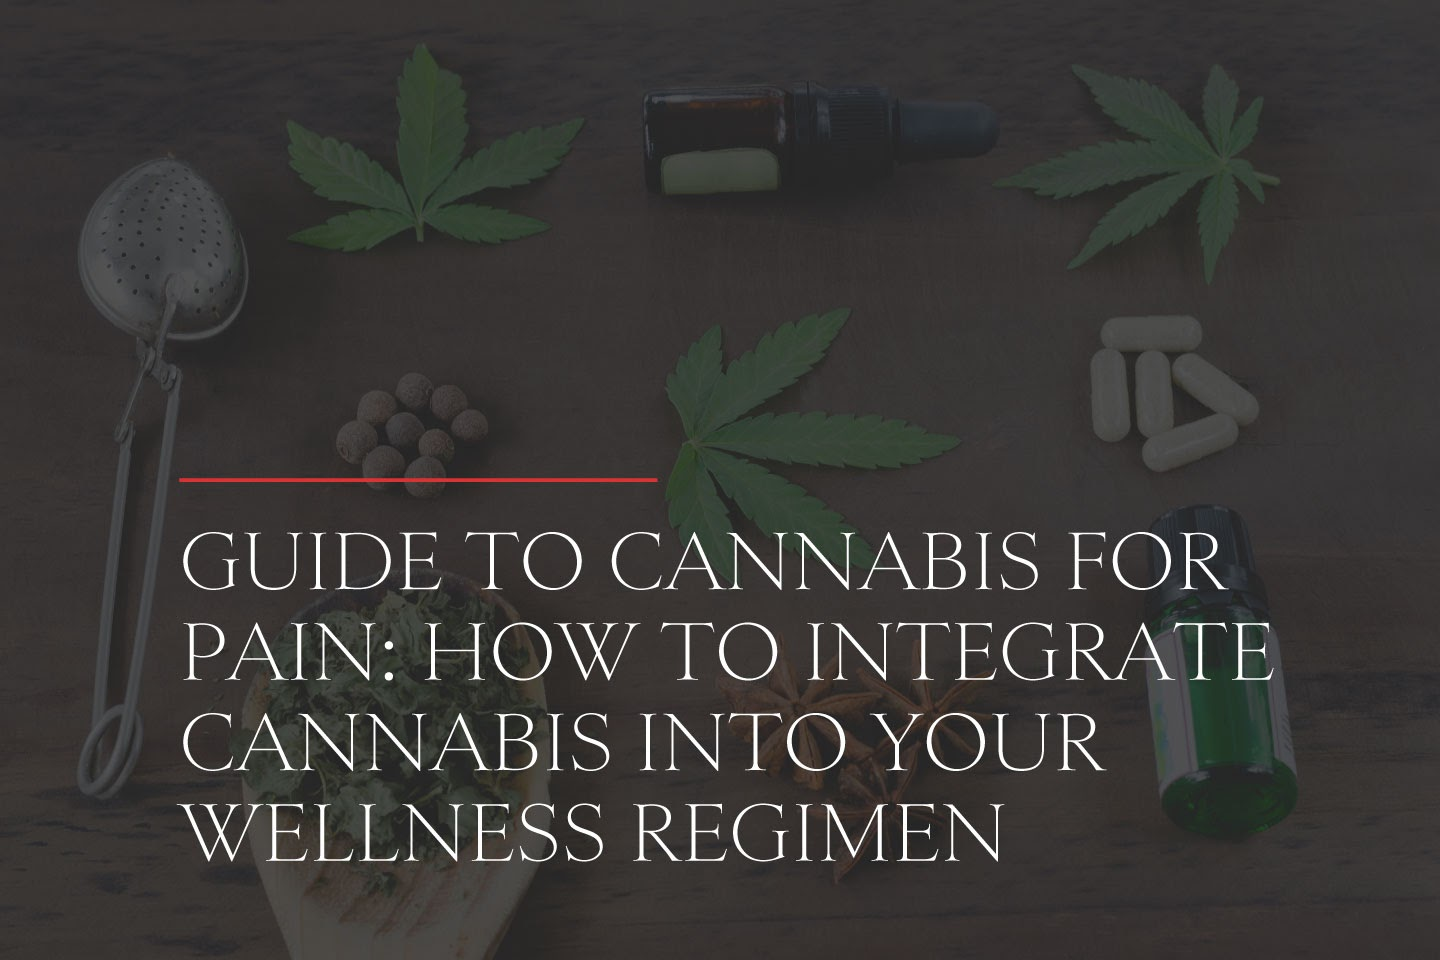 Guide to Cannabis for Pain: How to Integrate Cannabis into Your Wellness Regimen